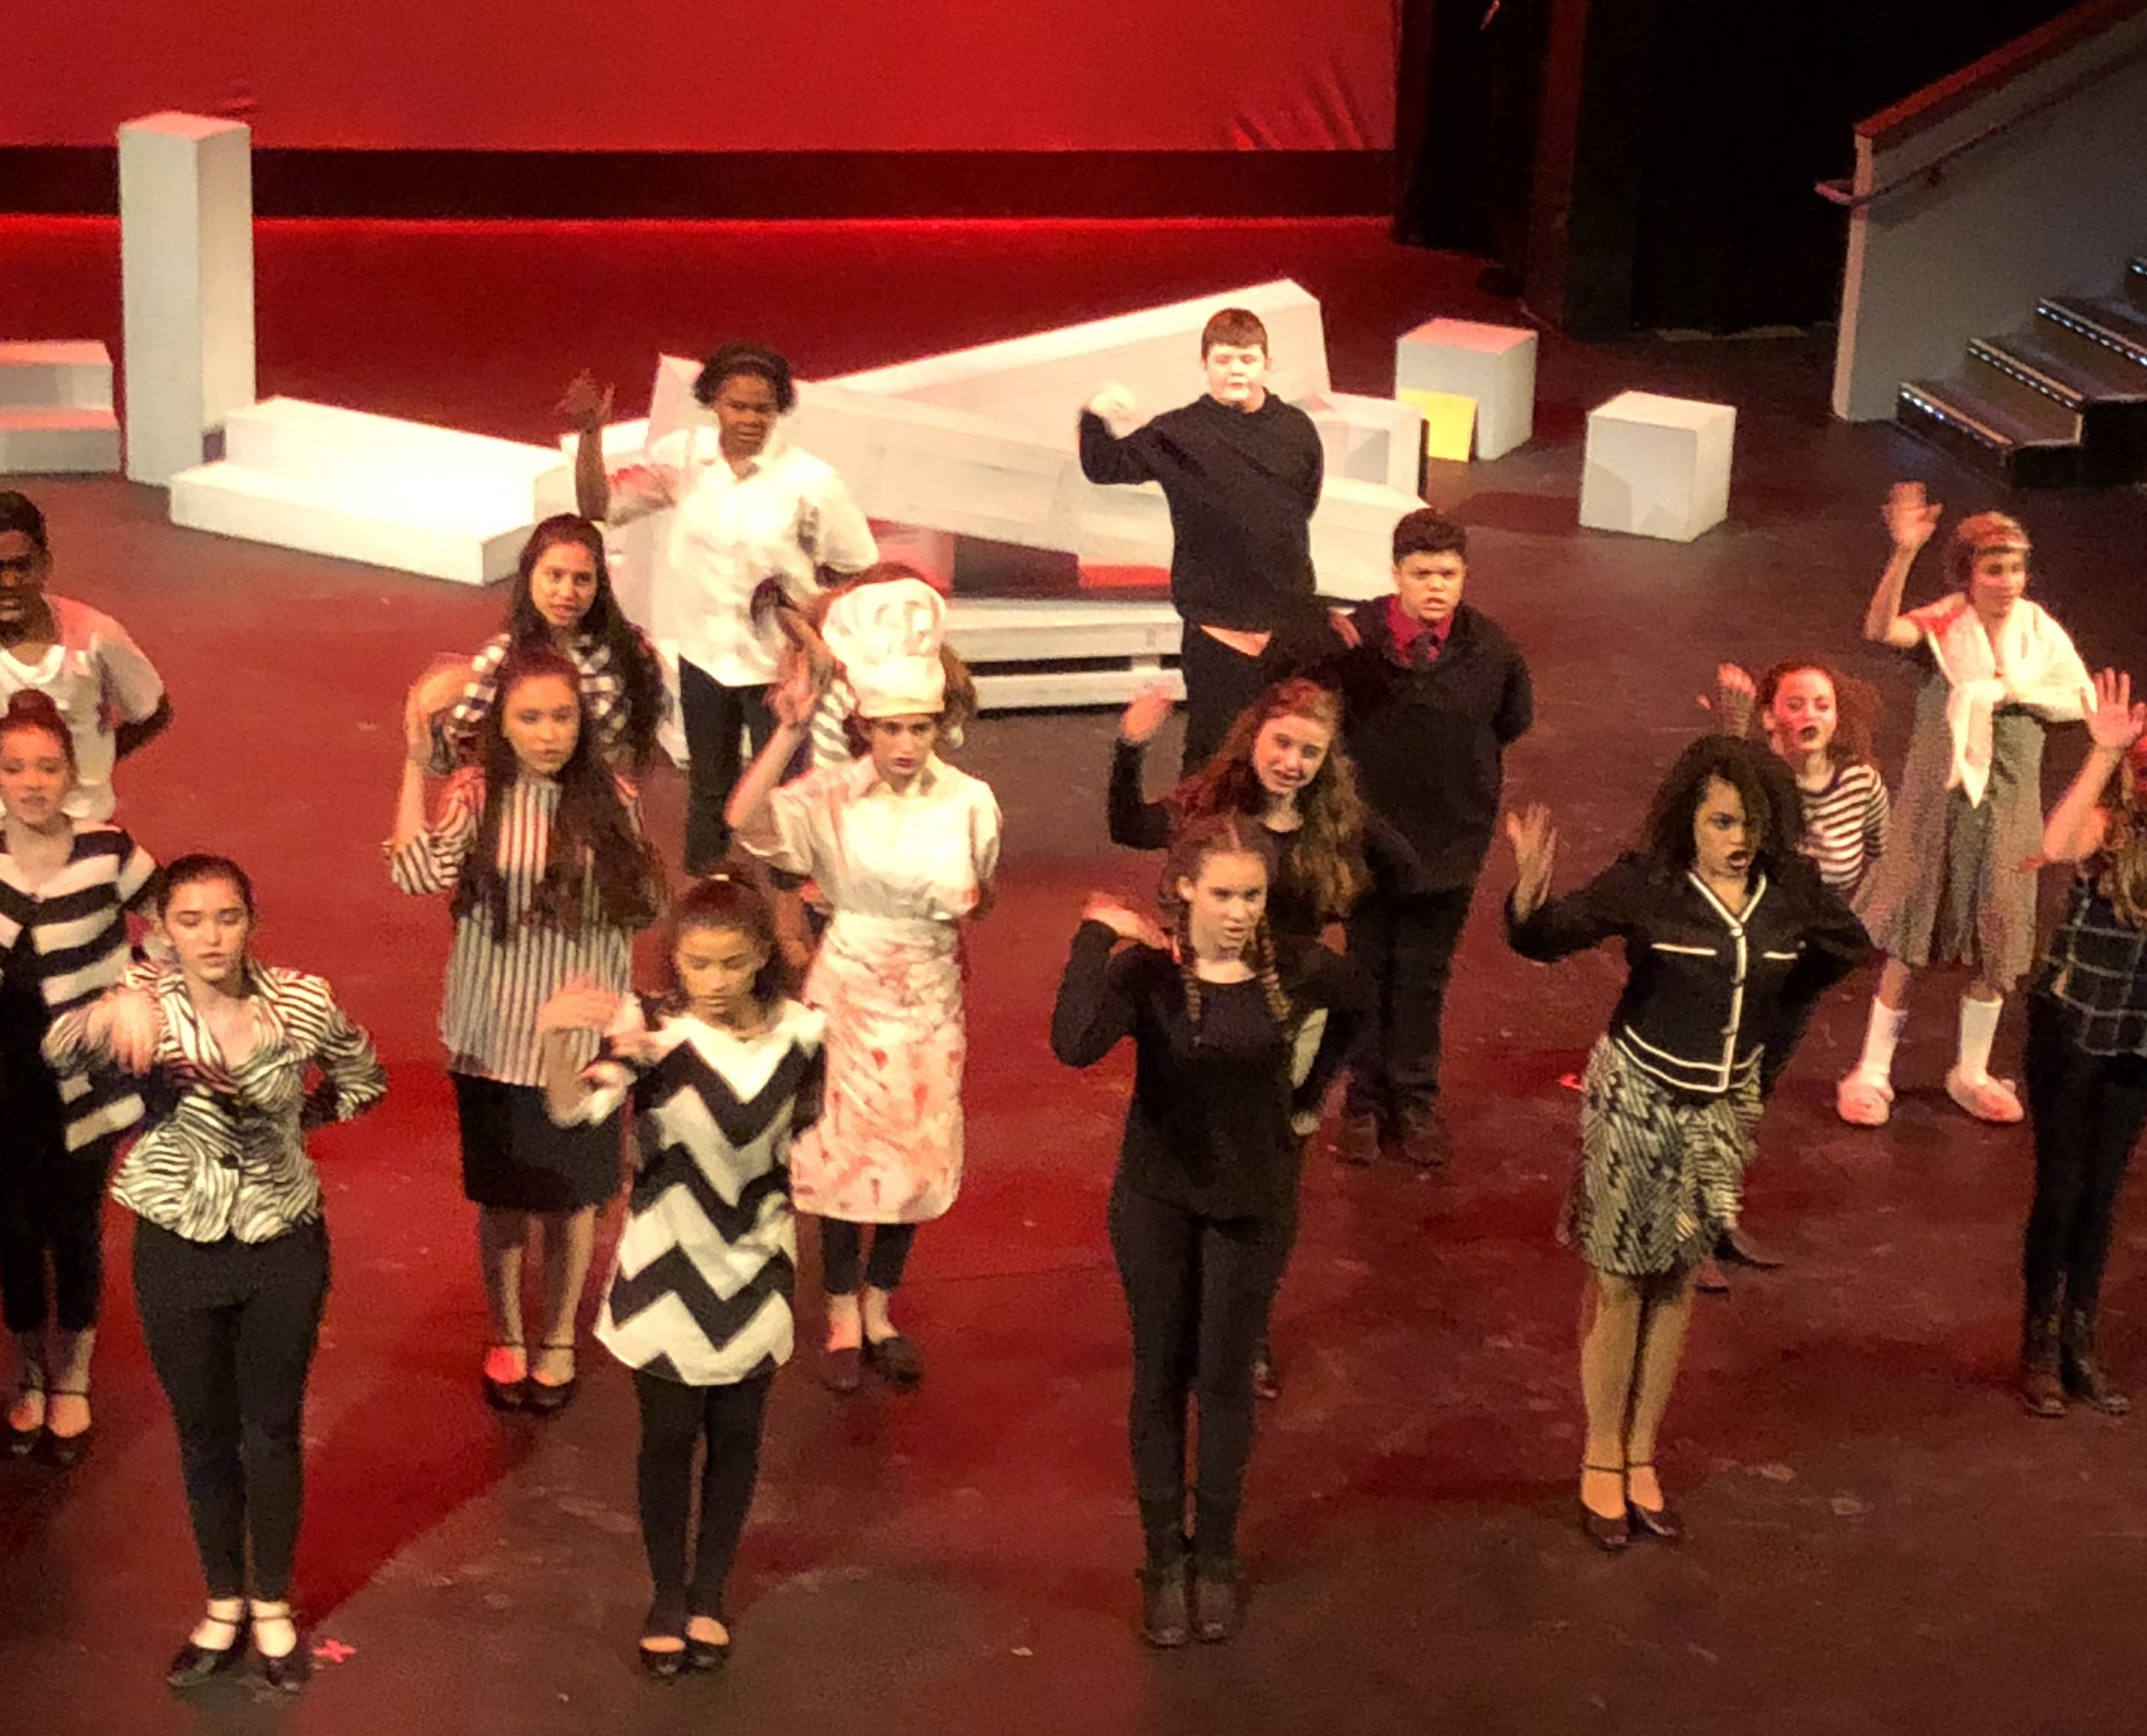 Photo of a cast of teen performers on stage.